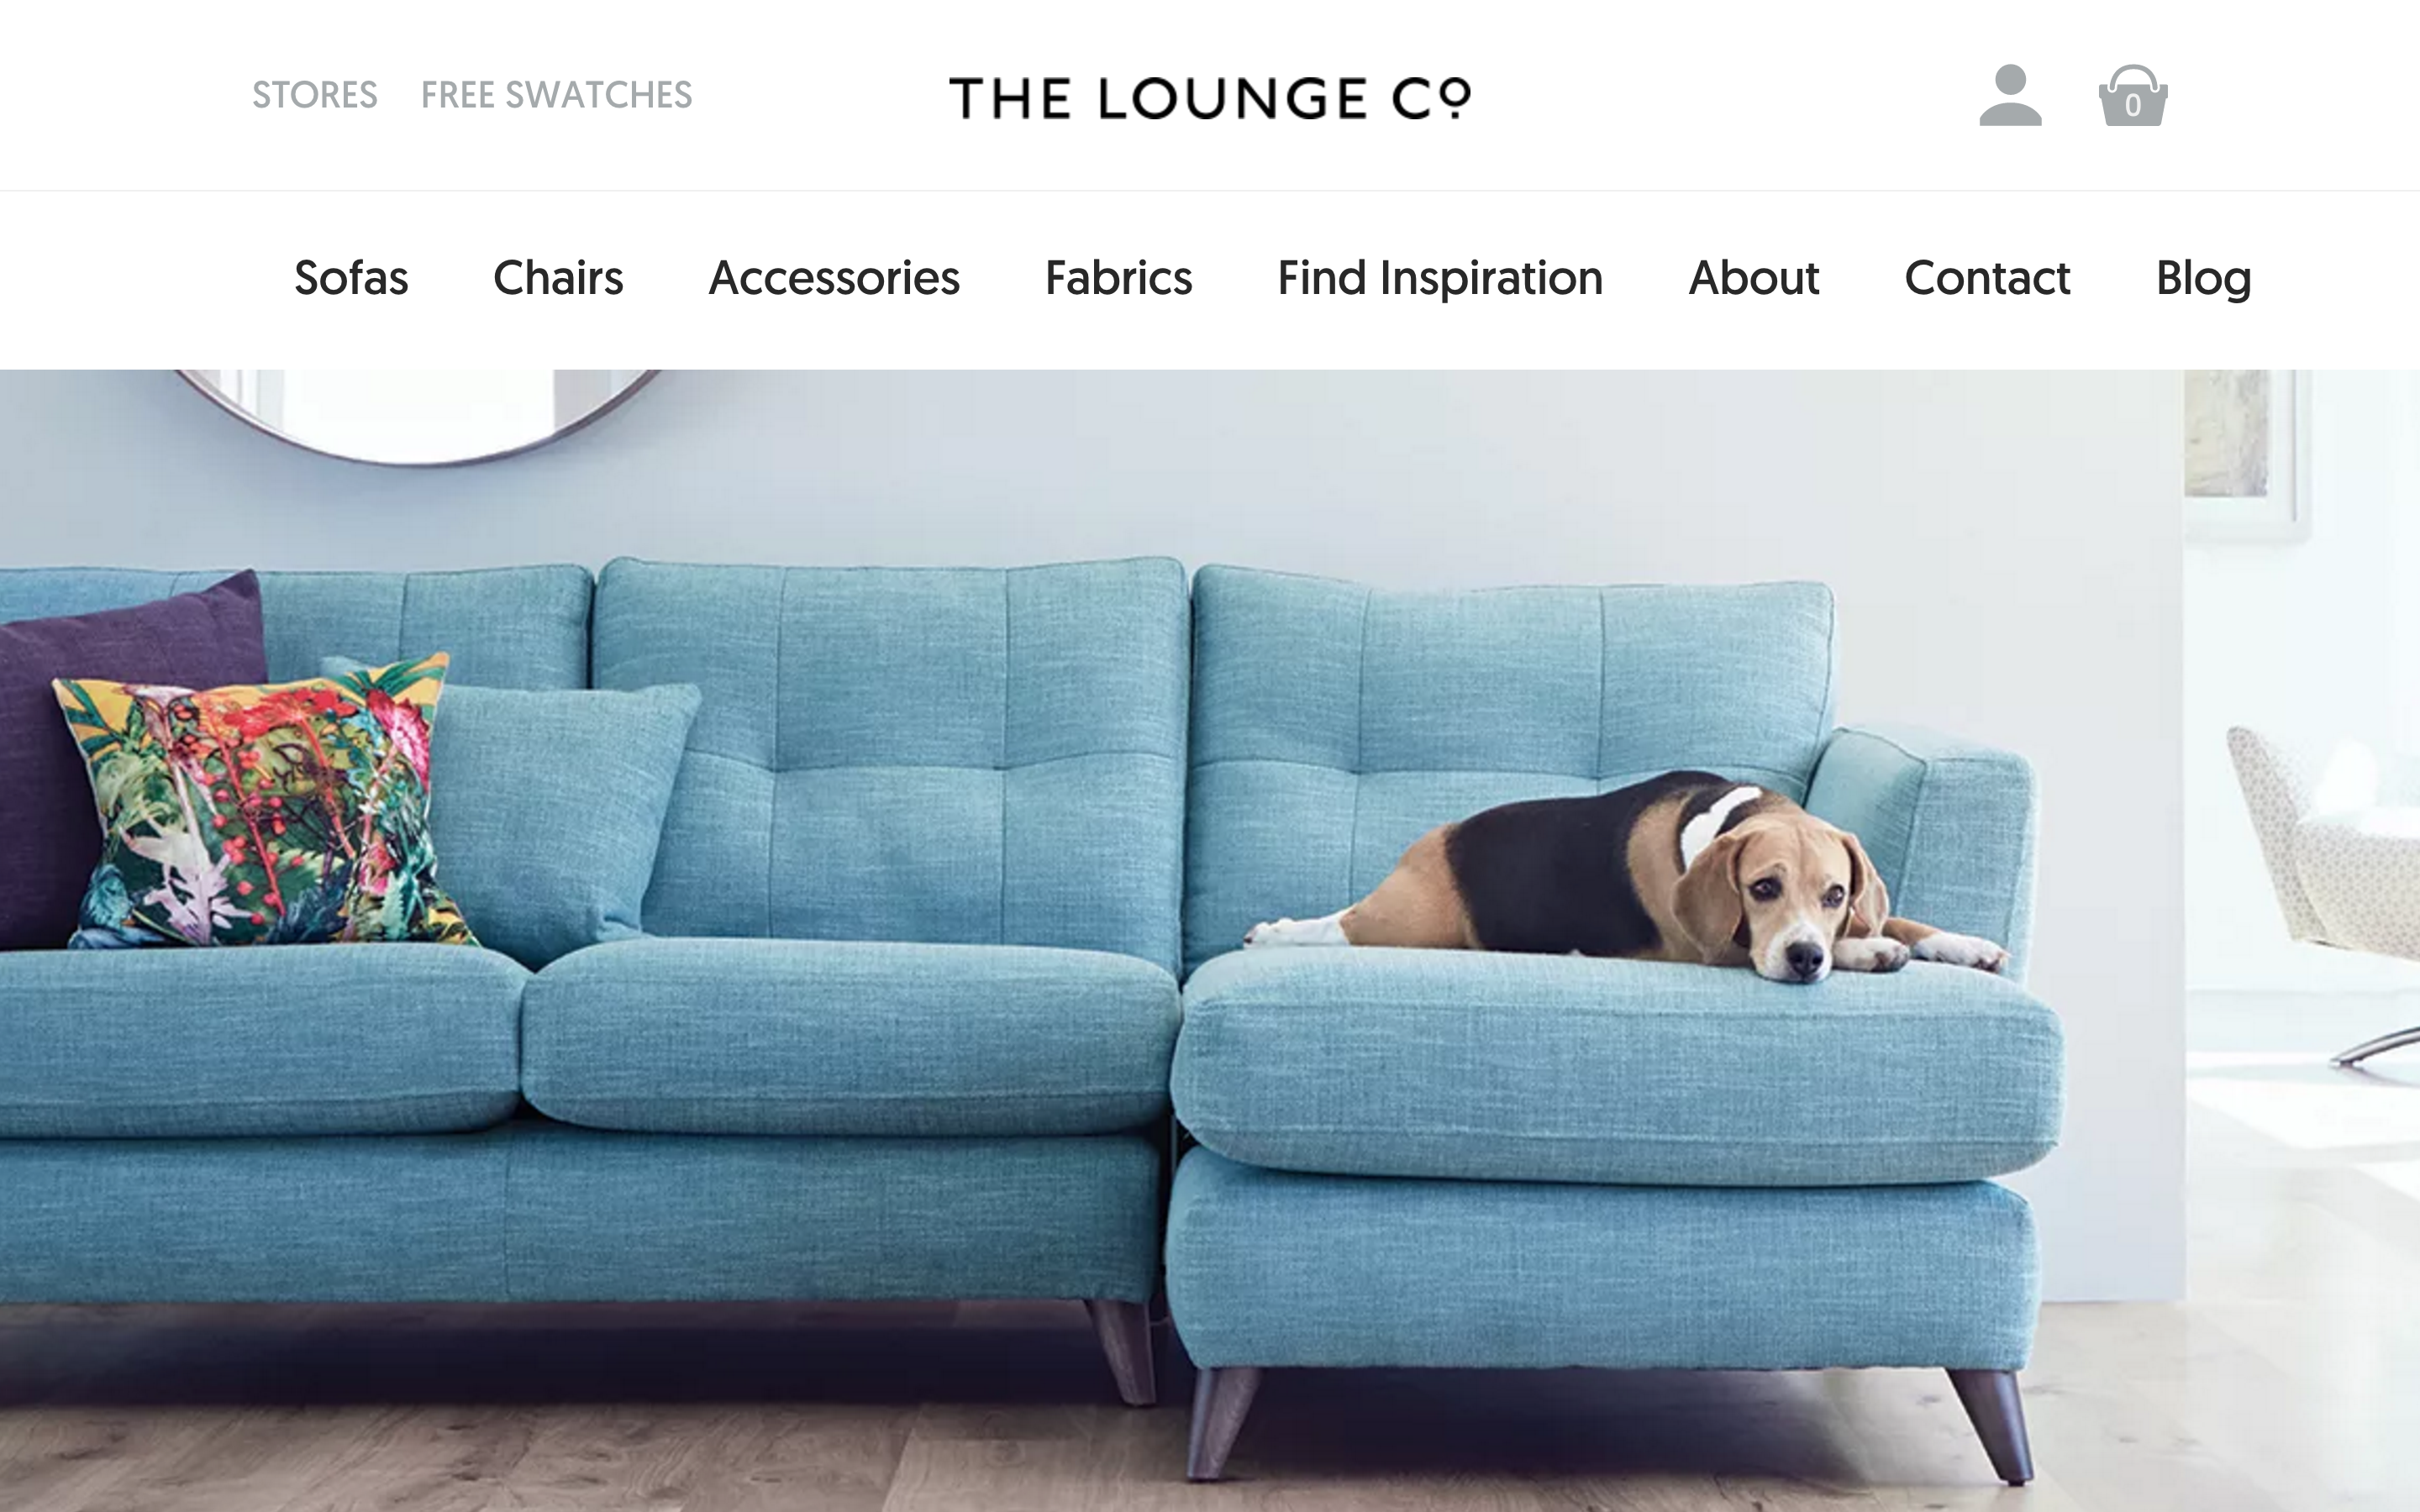 The Lounge Co